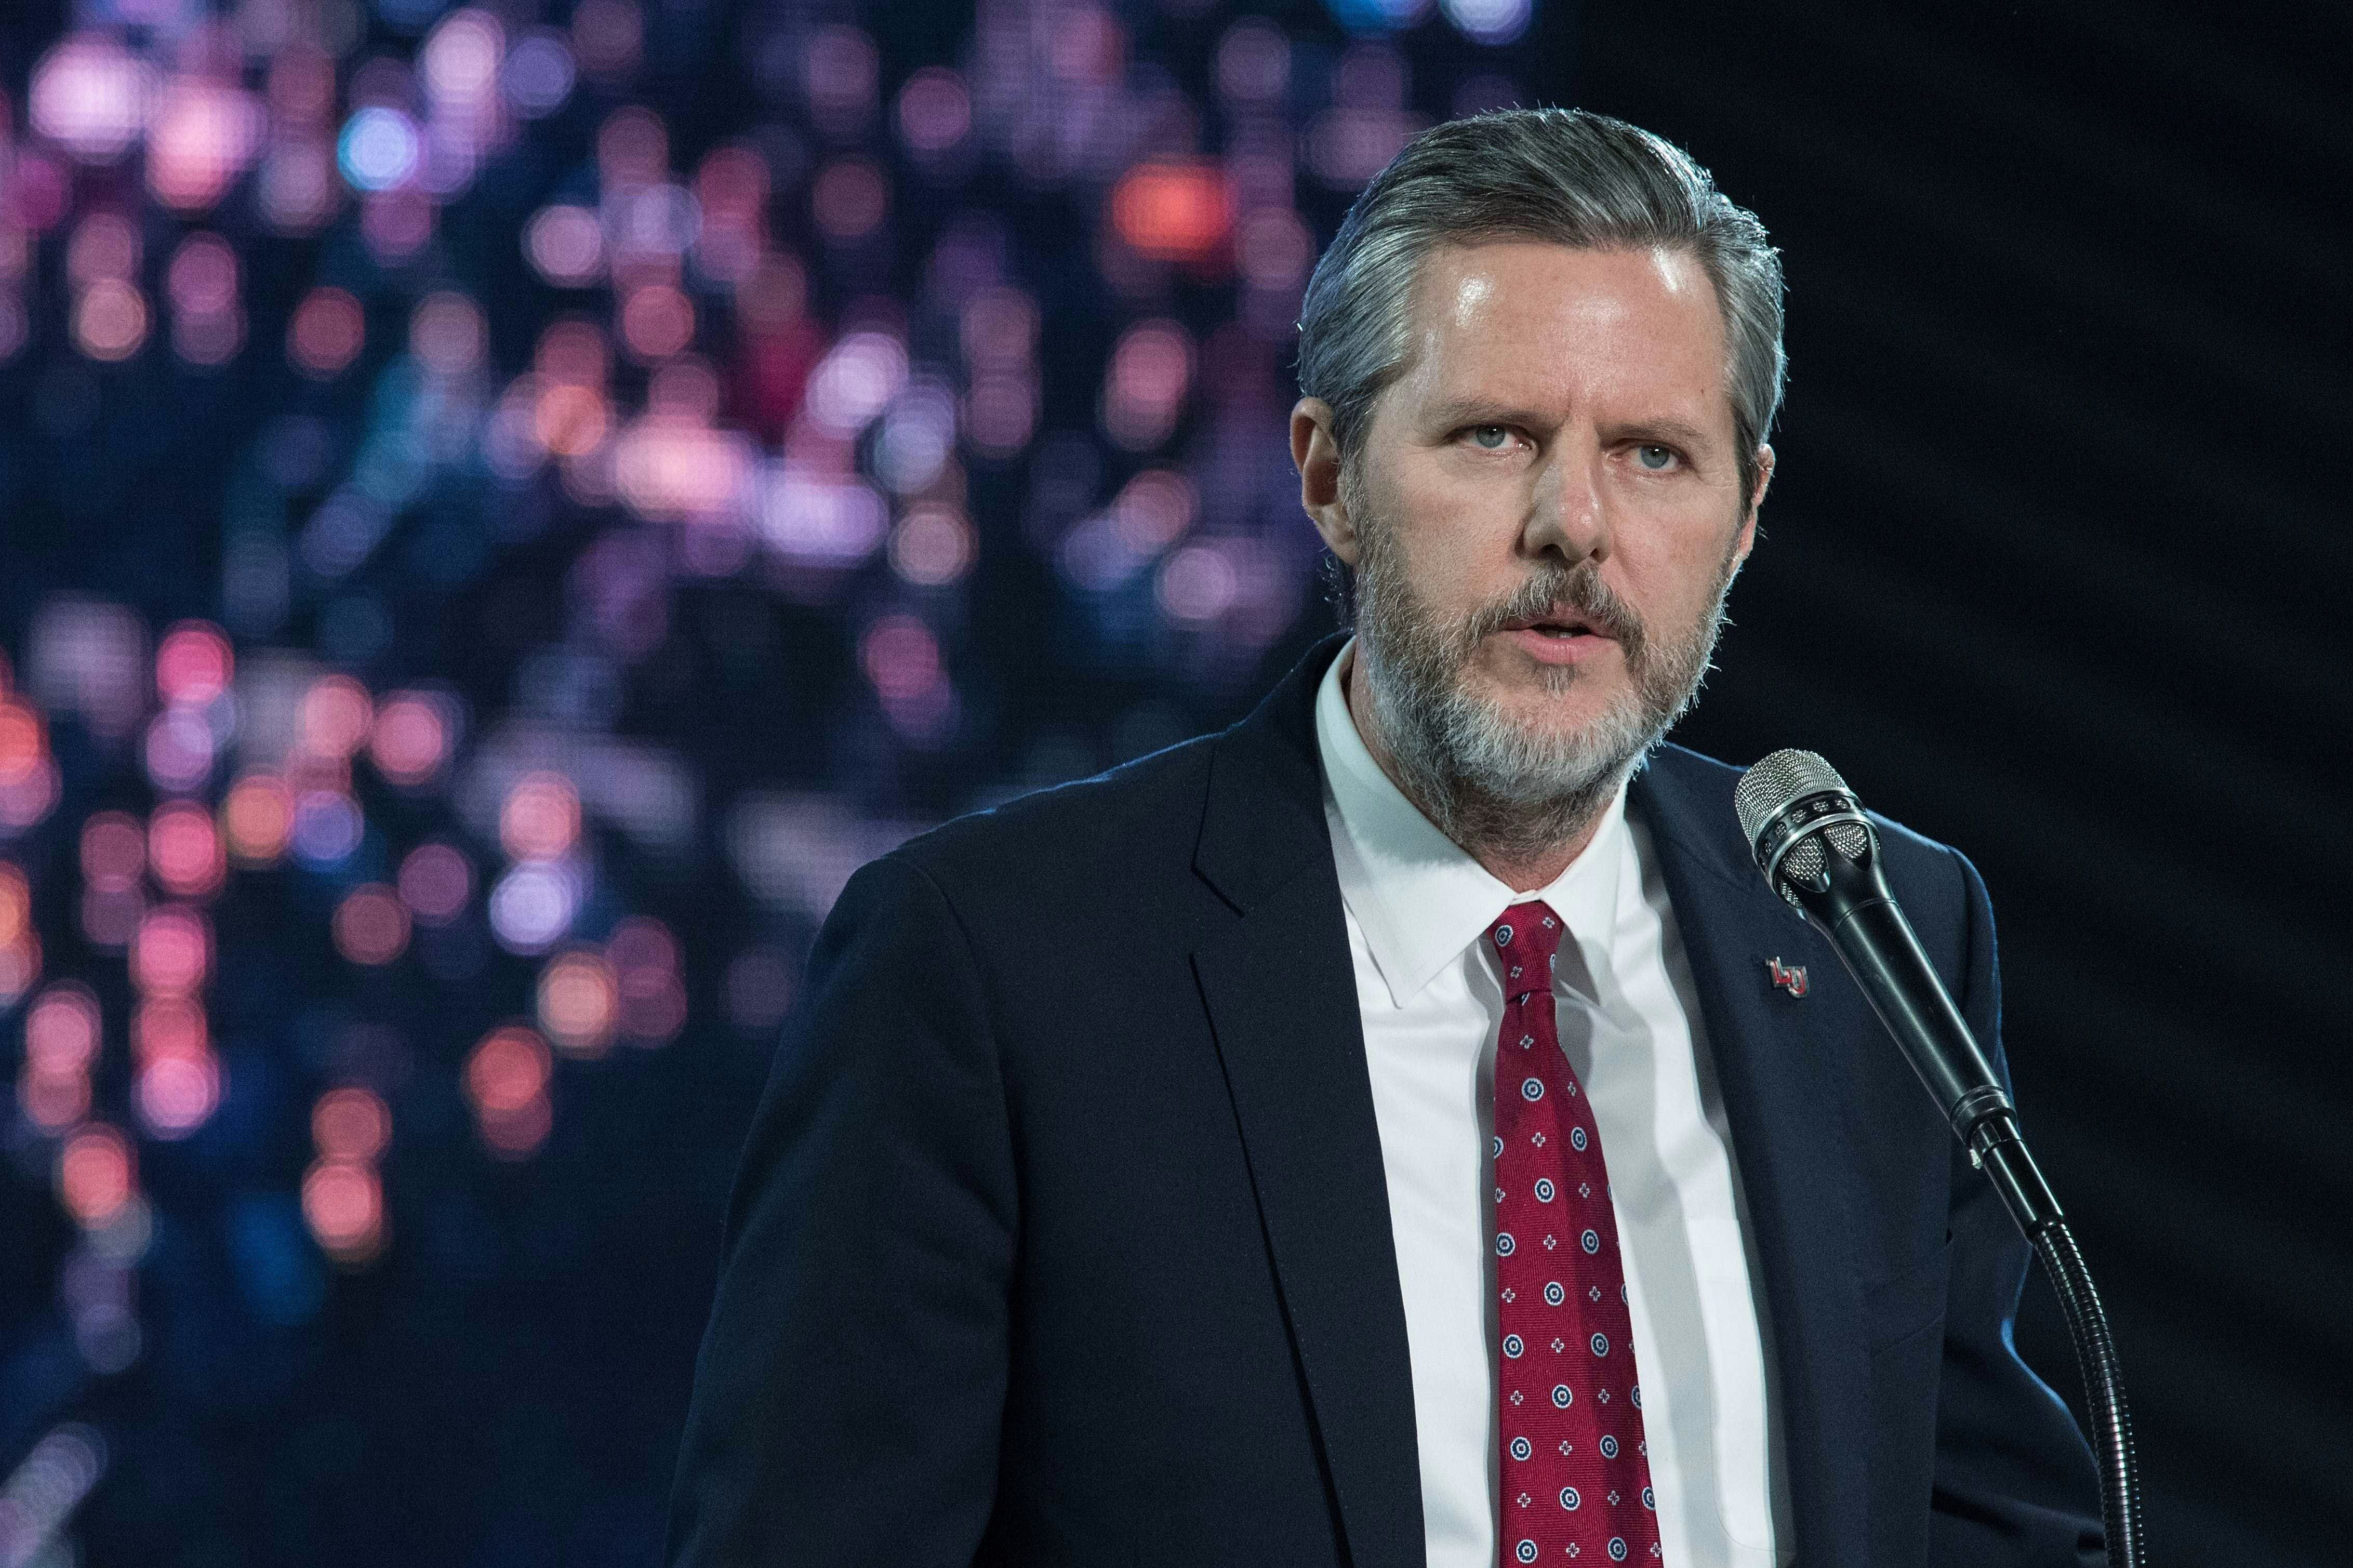 Liberty University president Jerry Falwell Jr. introduces U.S. Republican presidential candidate Donald Trump at a rally at L